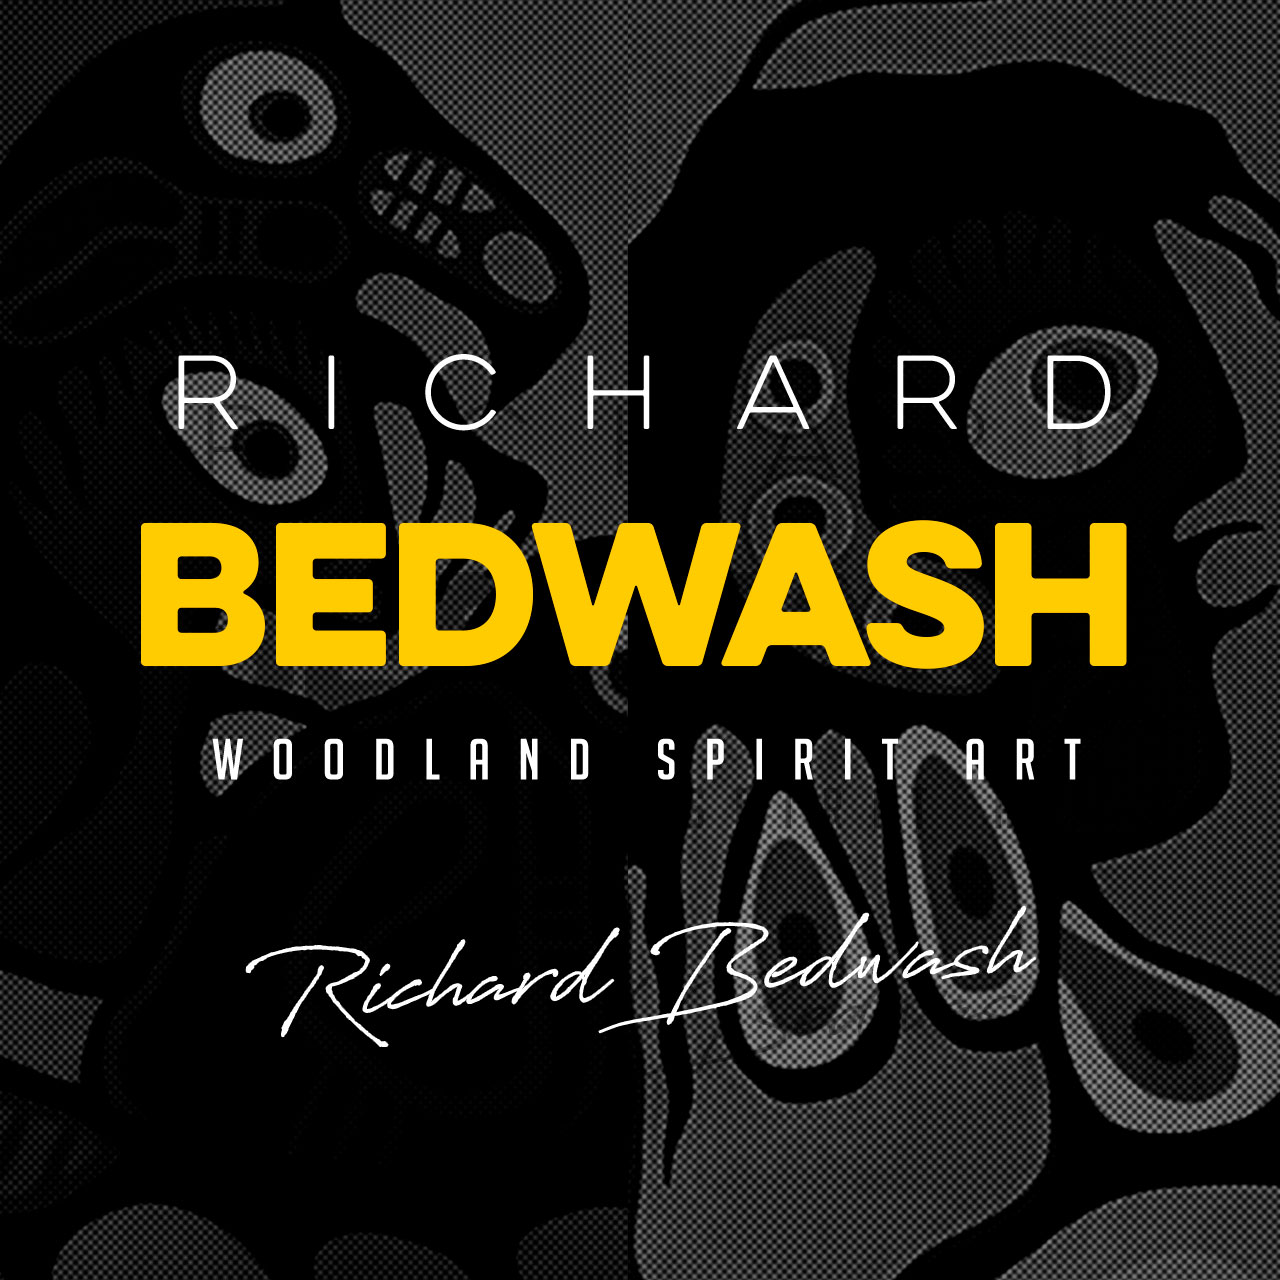 Richard Bedwash